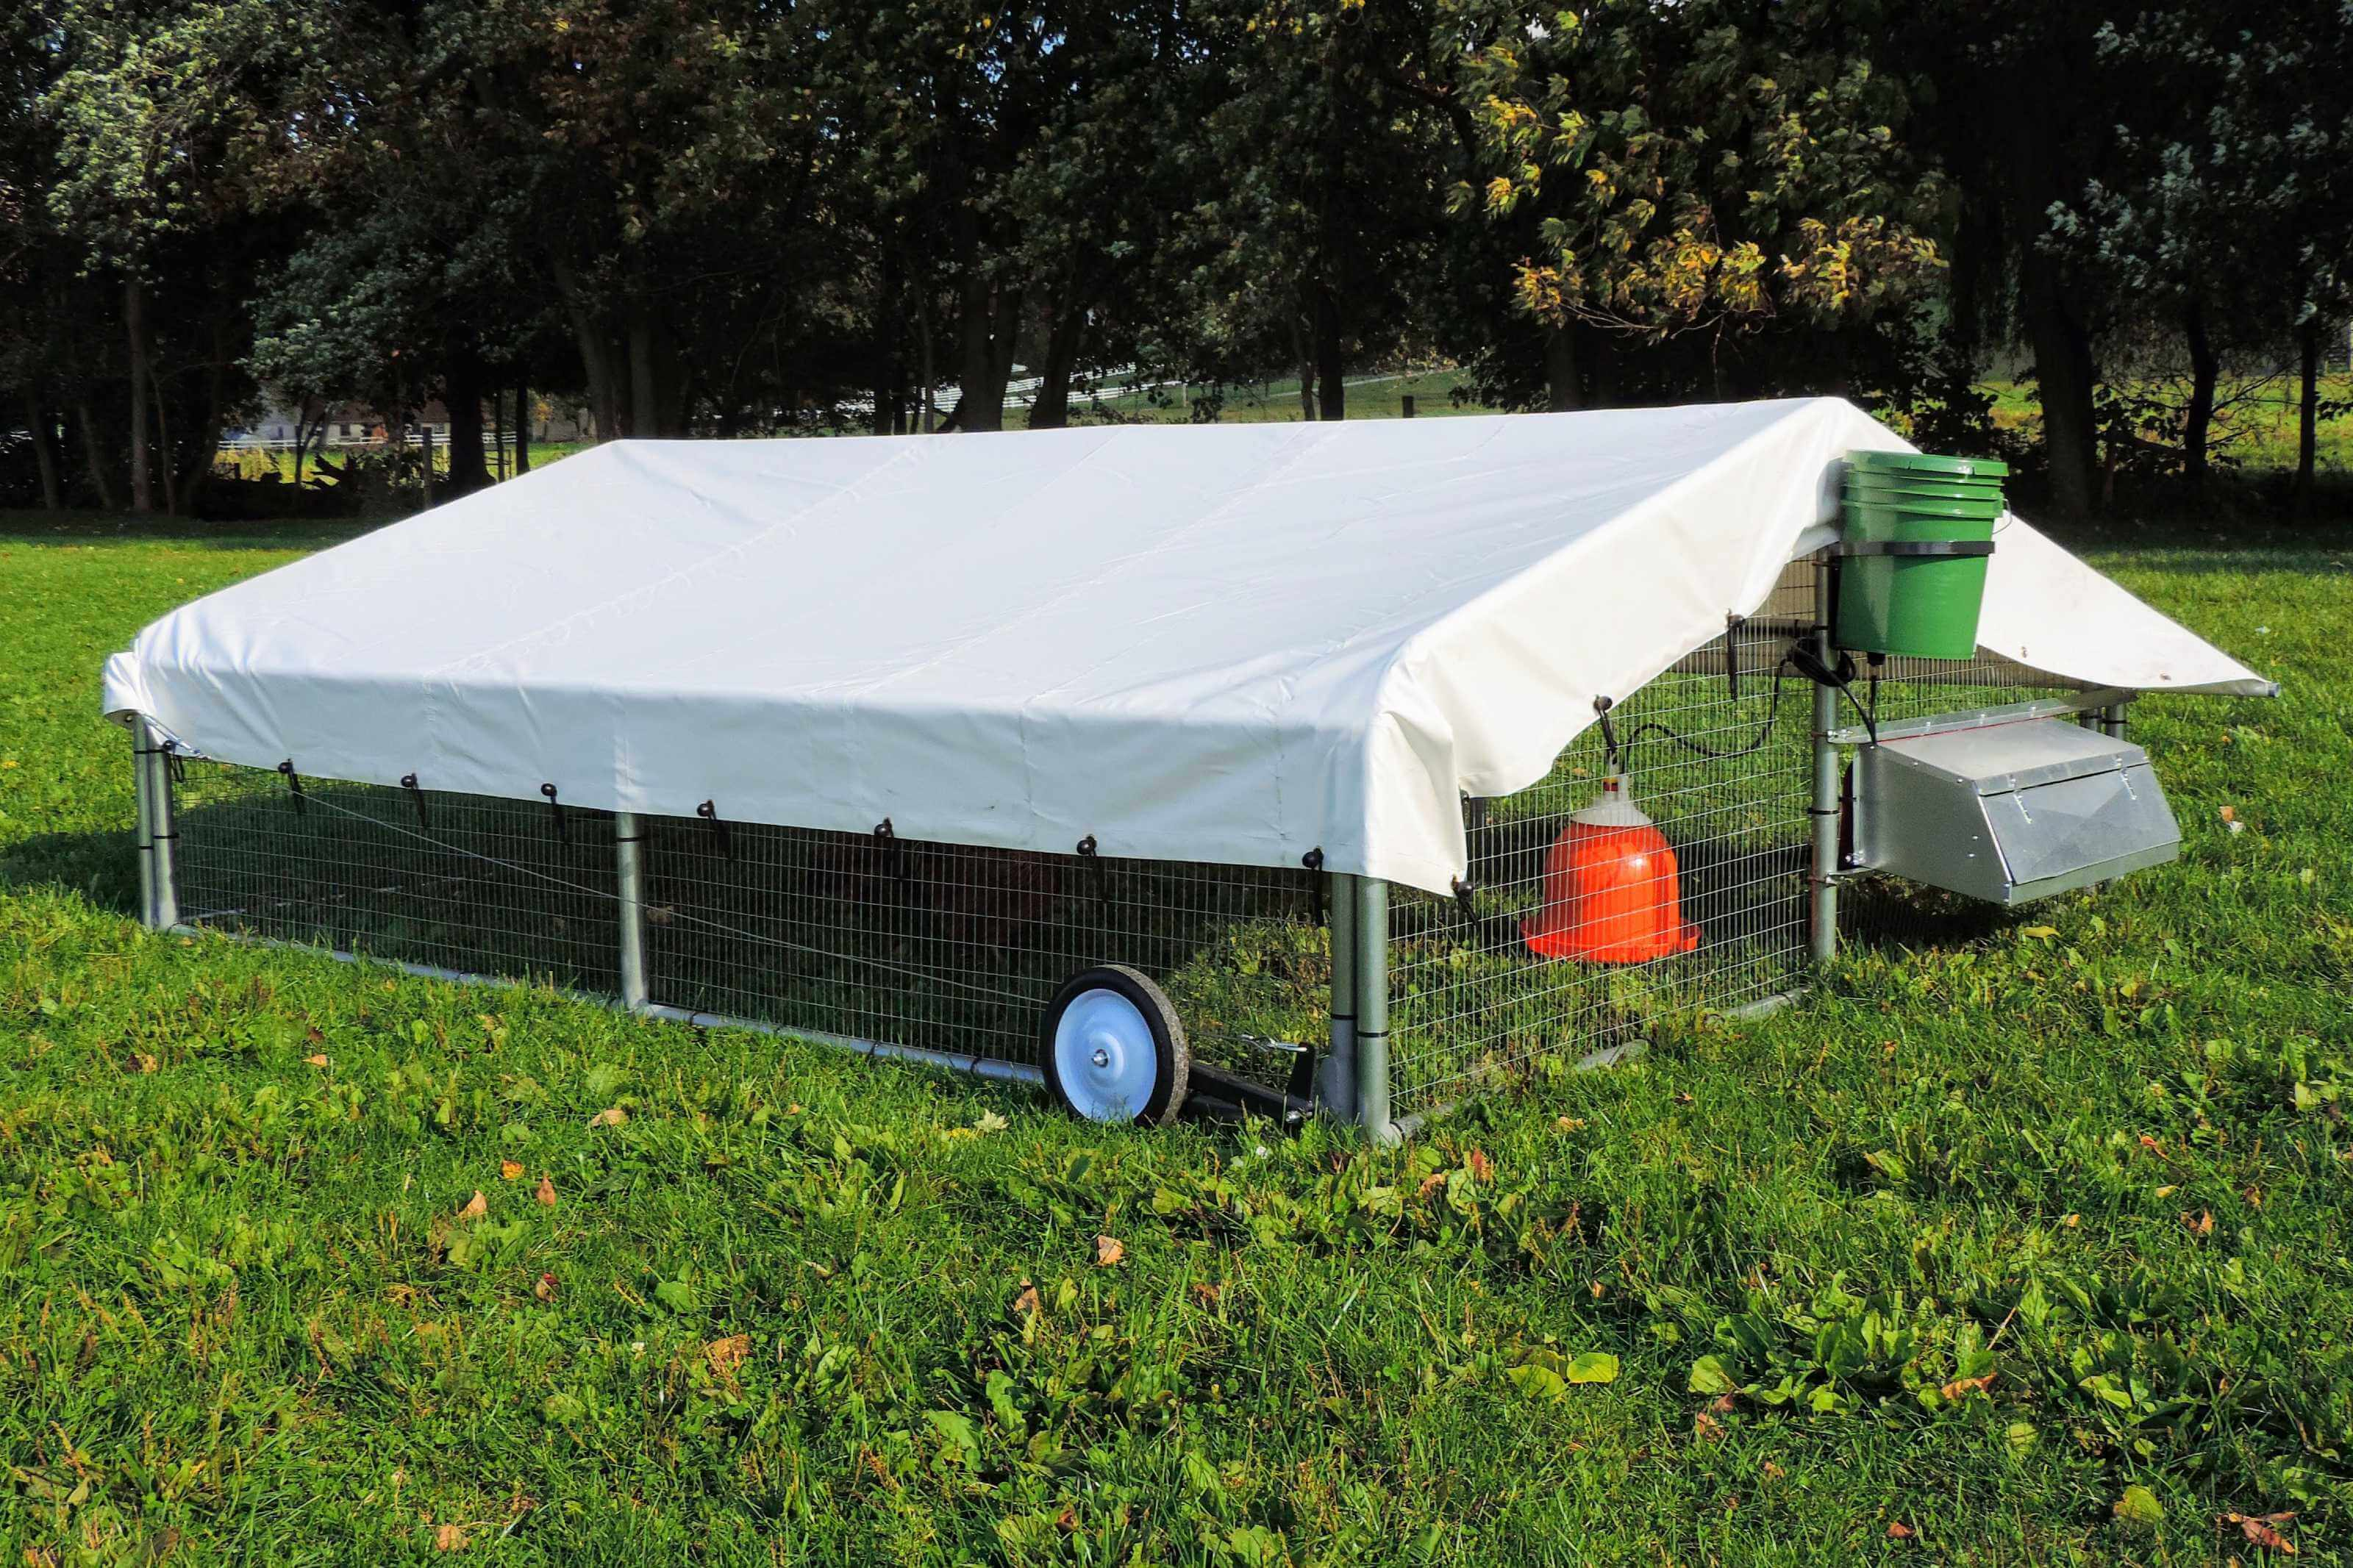 Chicken coop for pastured layers and broilers with wheel kit for easy moving